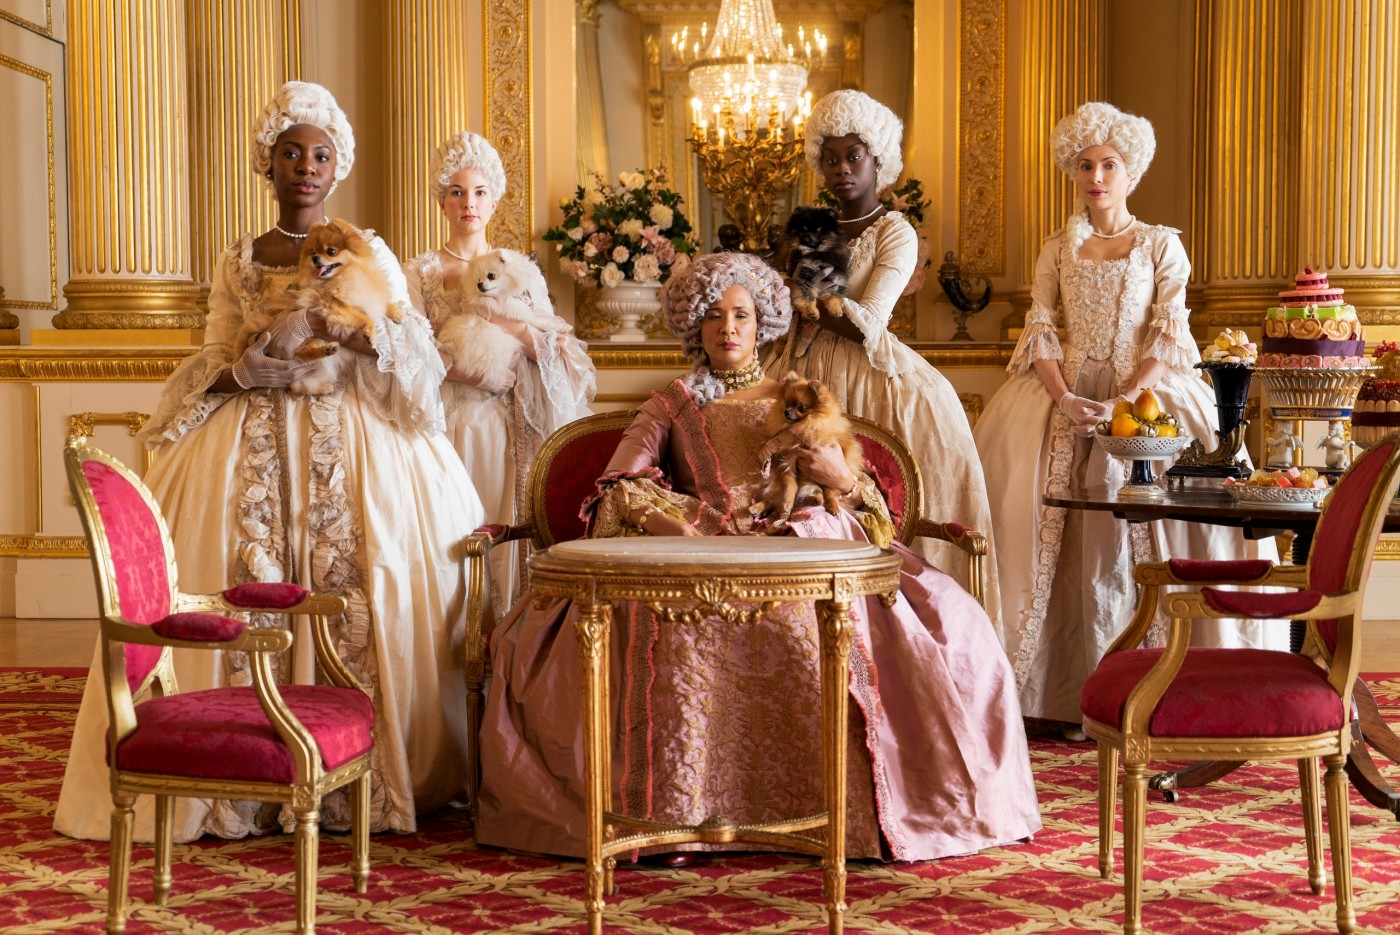 Queen Charlotte and her ladies in waiting.Credit: Netflix 2020.